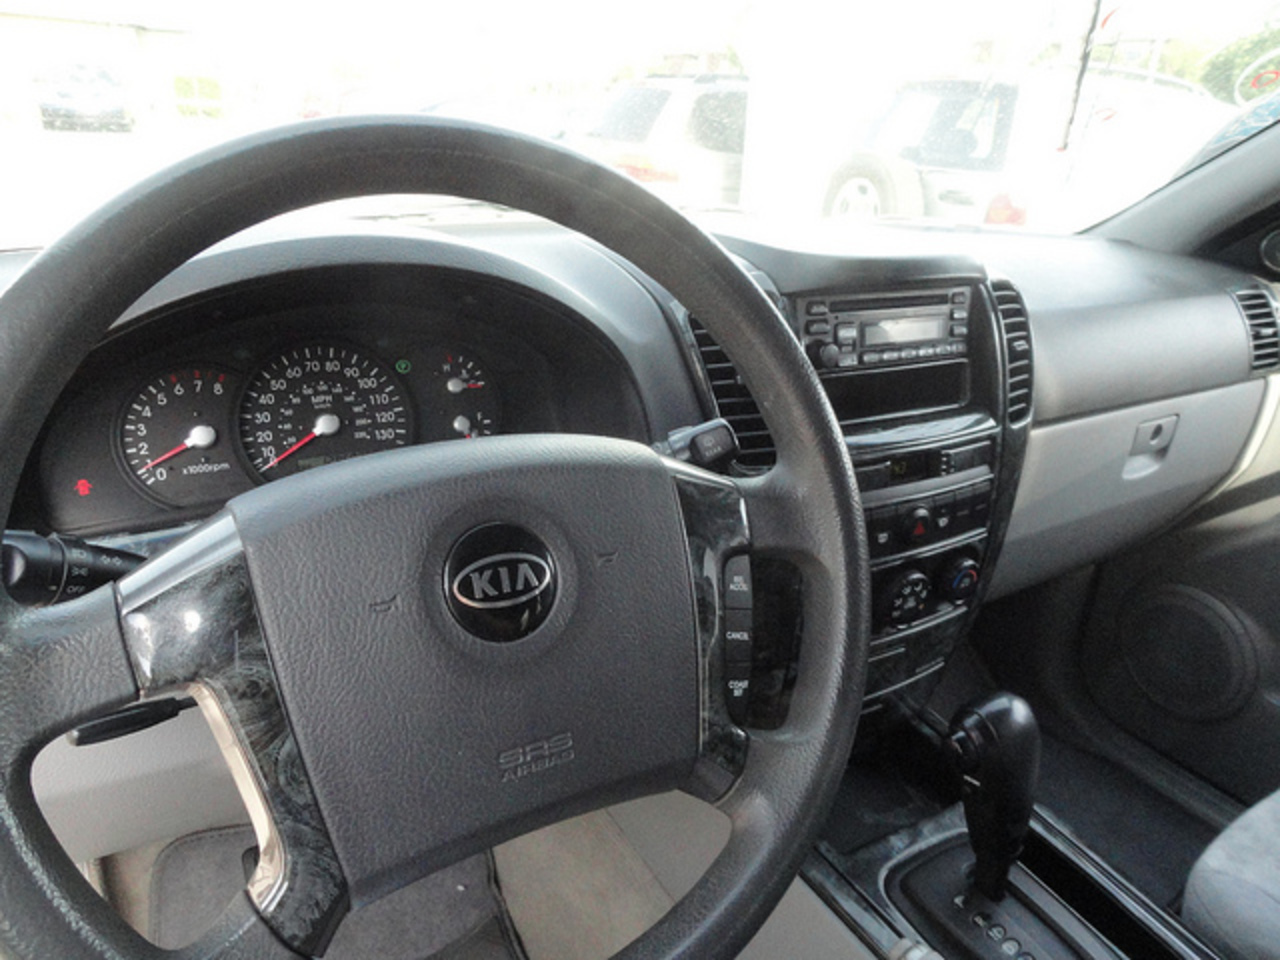 KIA Sorento LX Dashboard | Flickr - Photo Sharing!